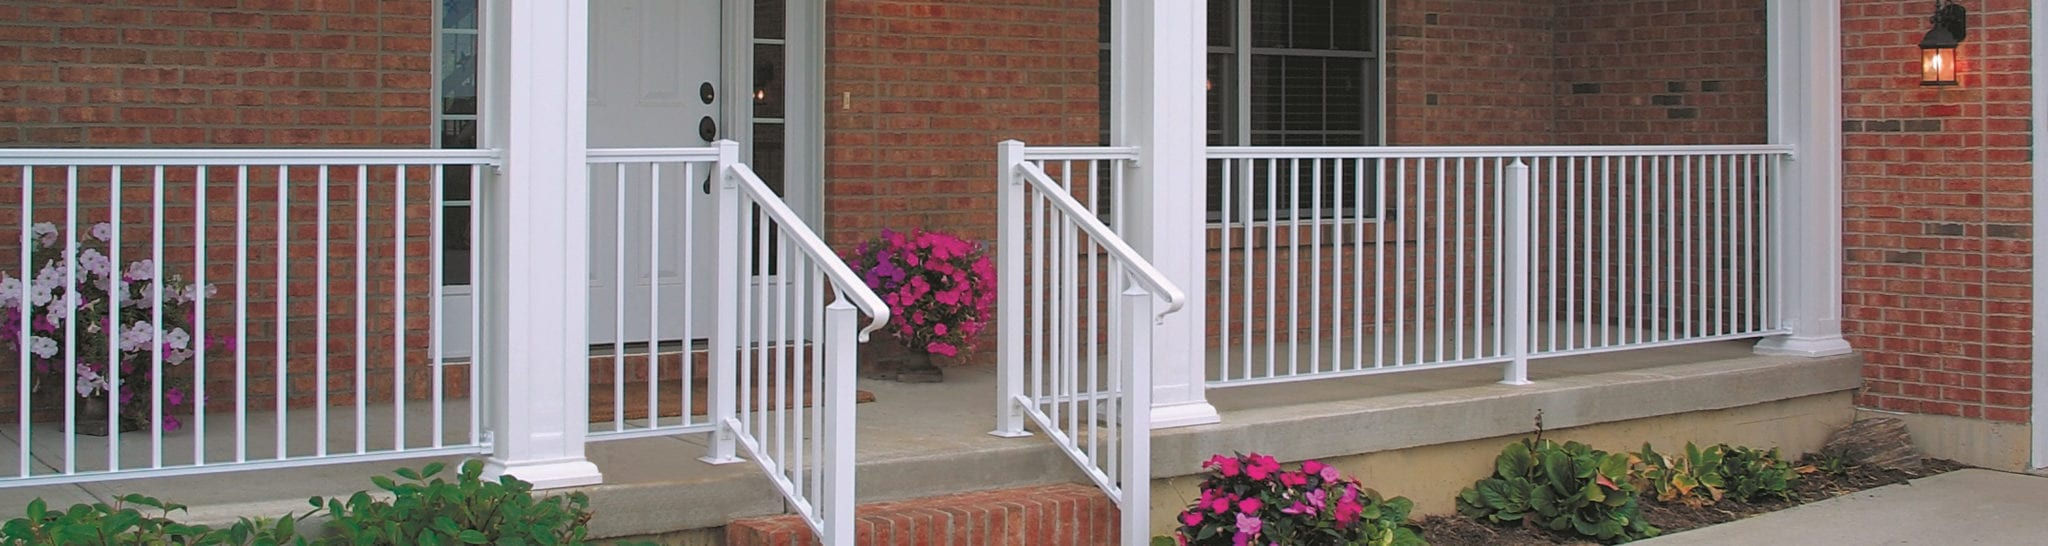 Residential Railings and Columns